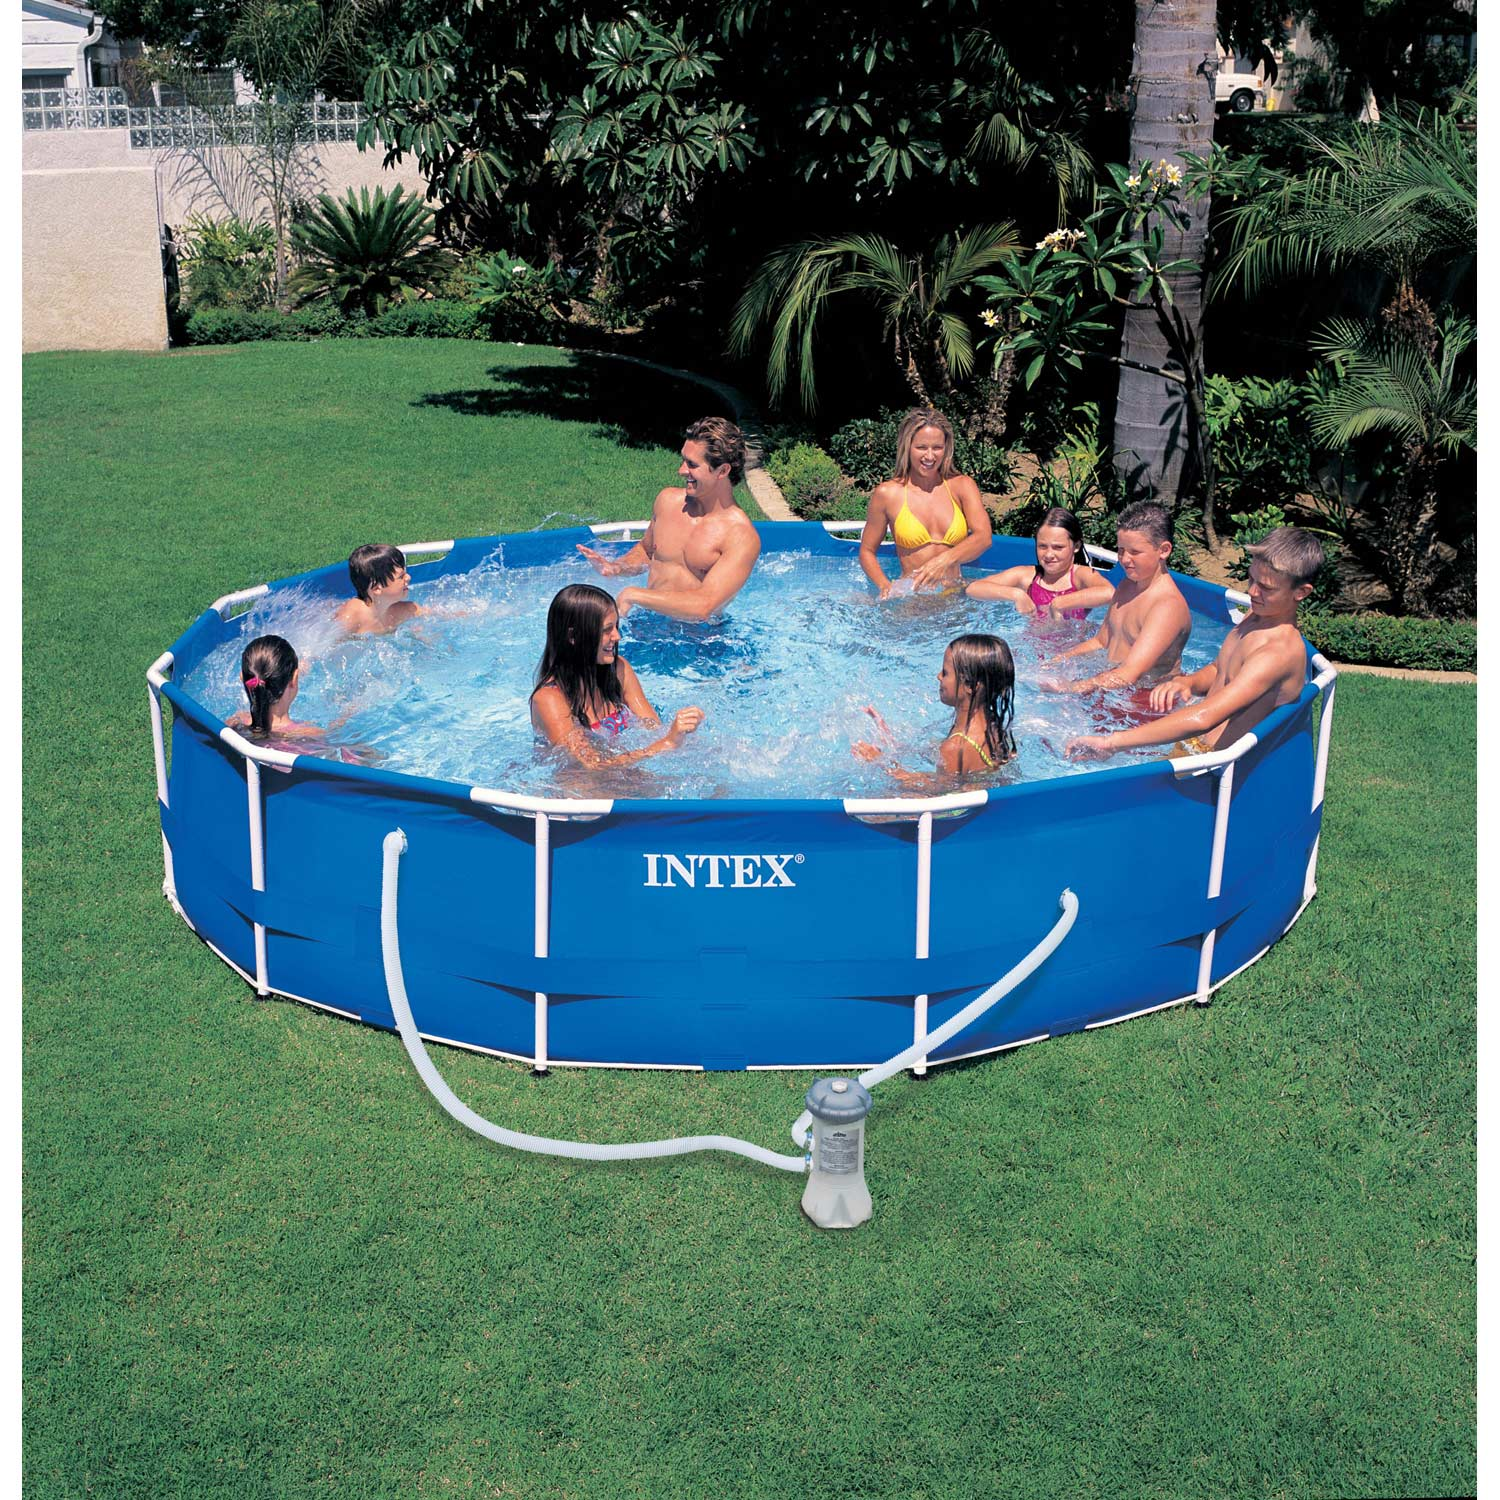 Piscine hors sol autoportante tubulaire metal frame intex for Video x piscine